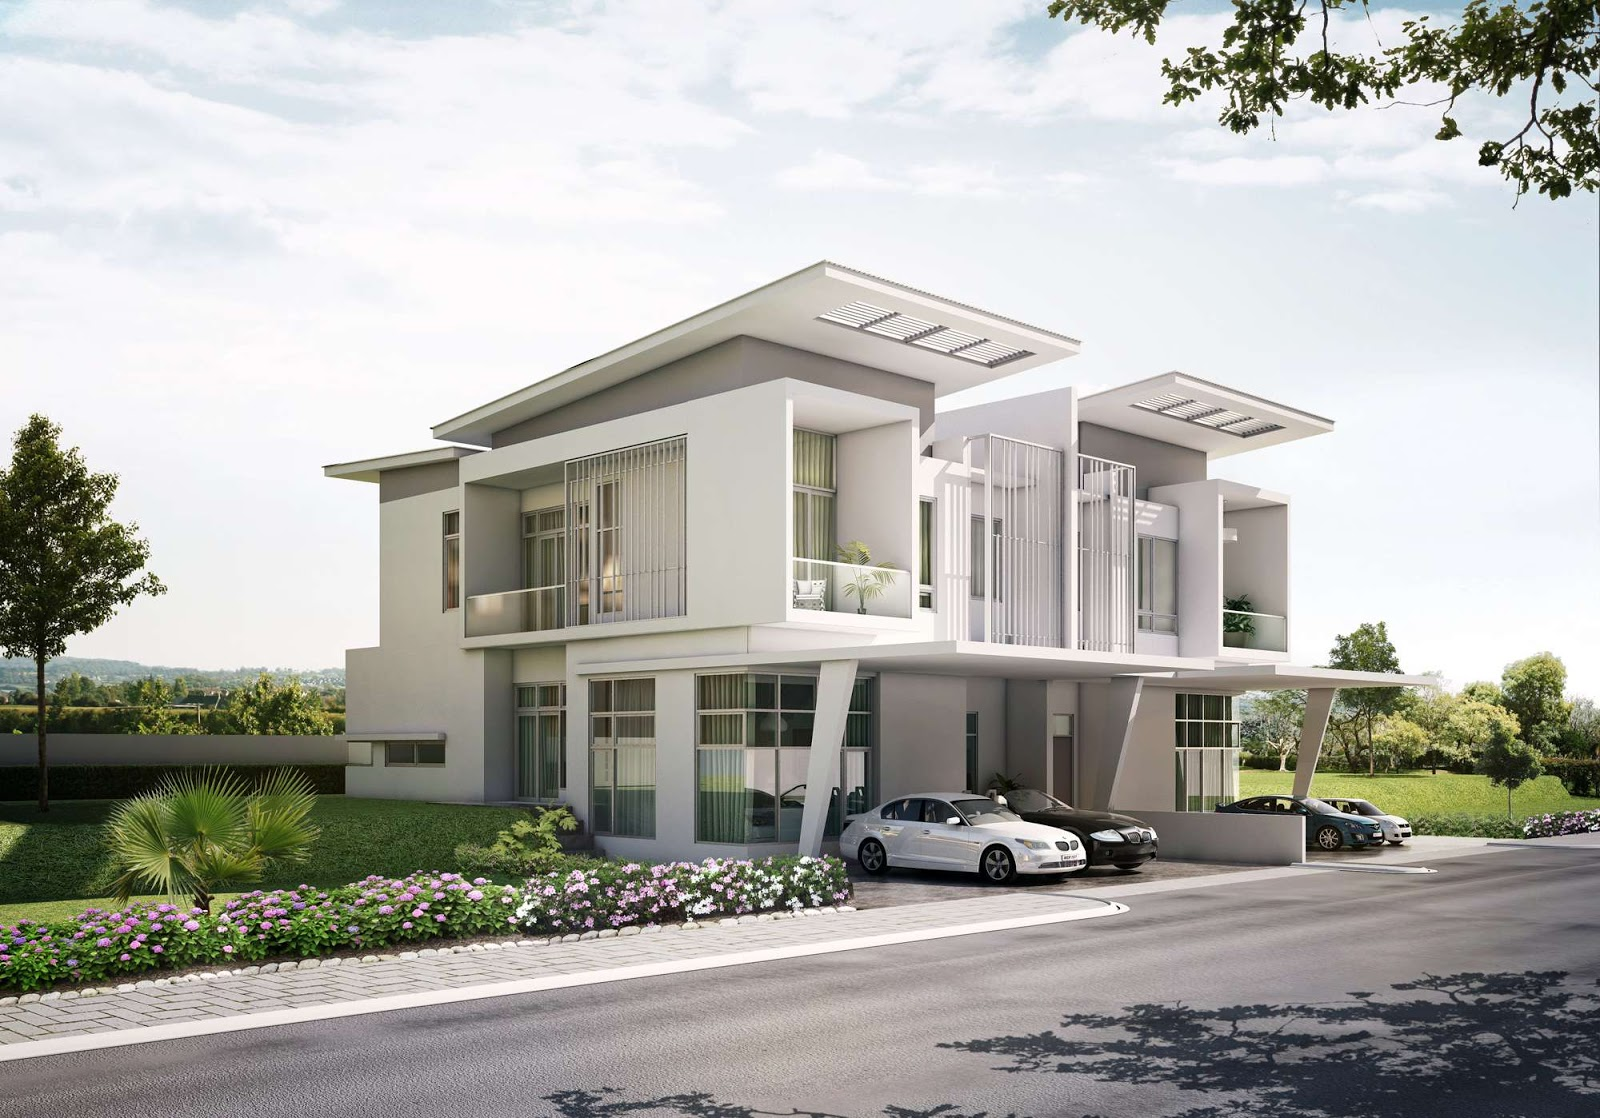 New home designs latest singapore modern homes exterior for Home design ideas singapore